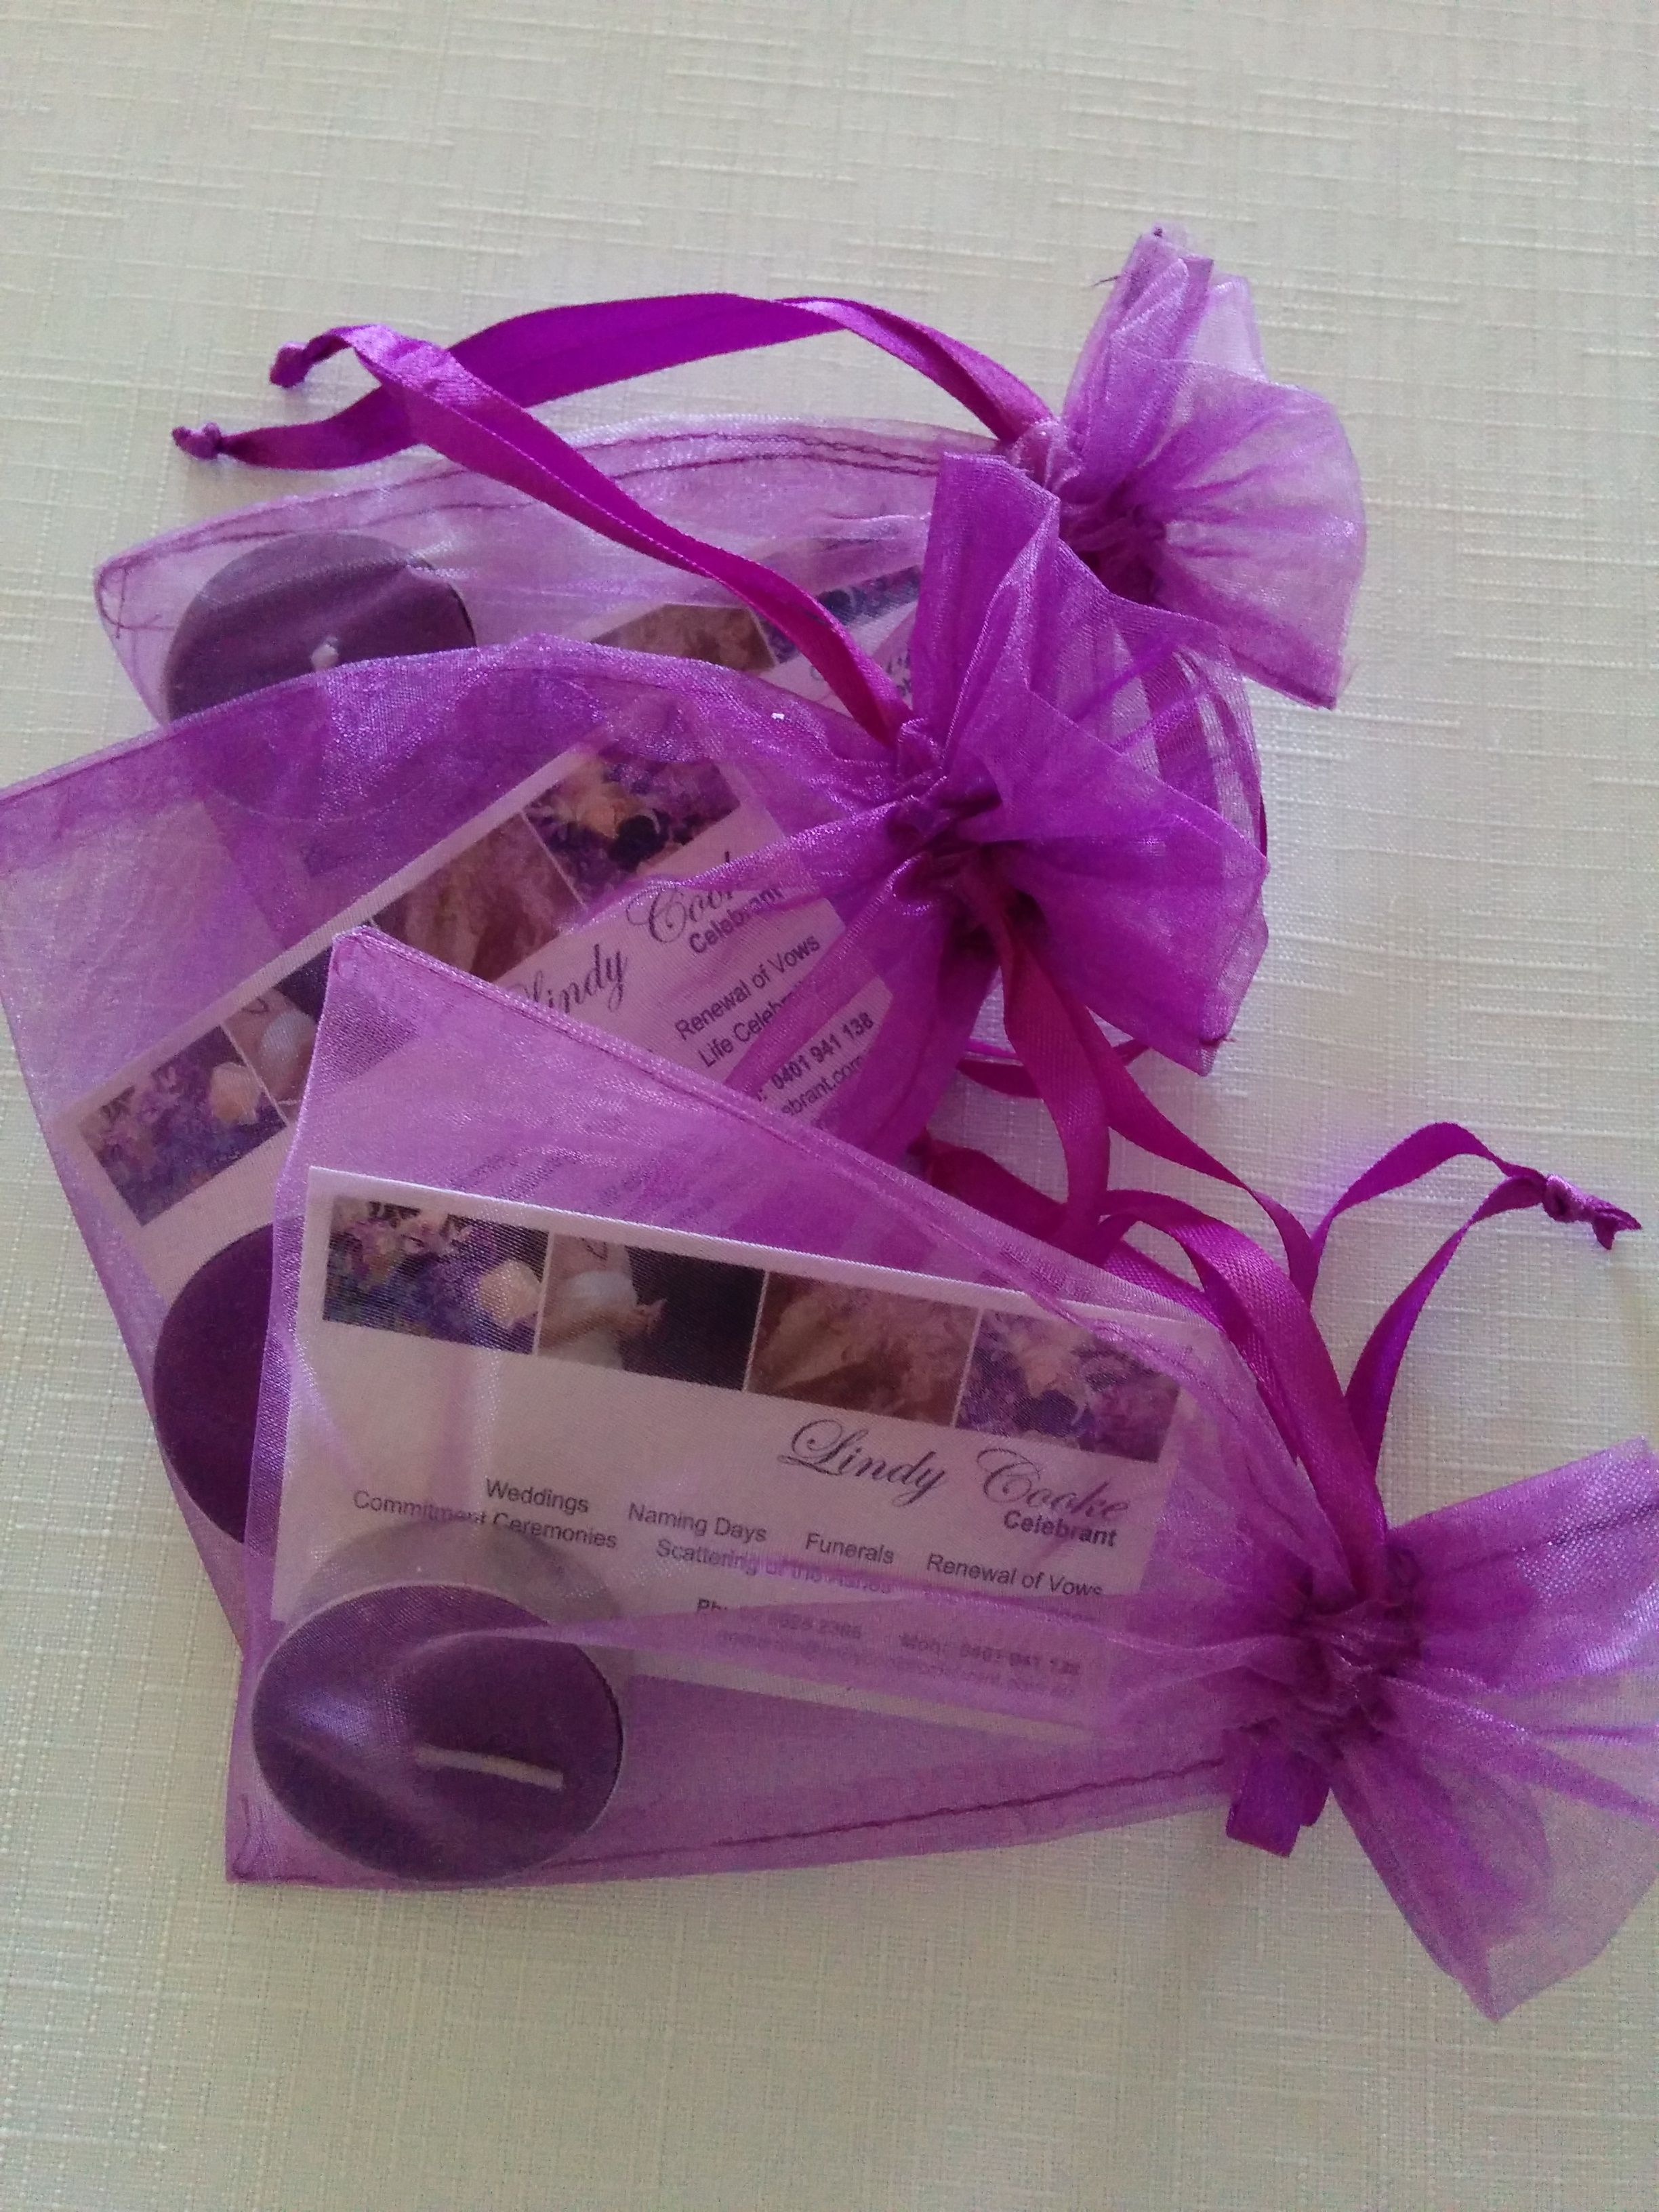 Bridal expo giveaways tea light candles and business cards in bridal expo giveaways tea light candles and business cards in chiffon bags magicingreecefo Images